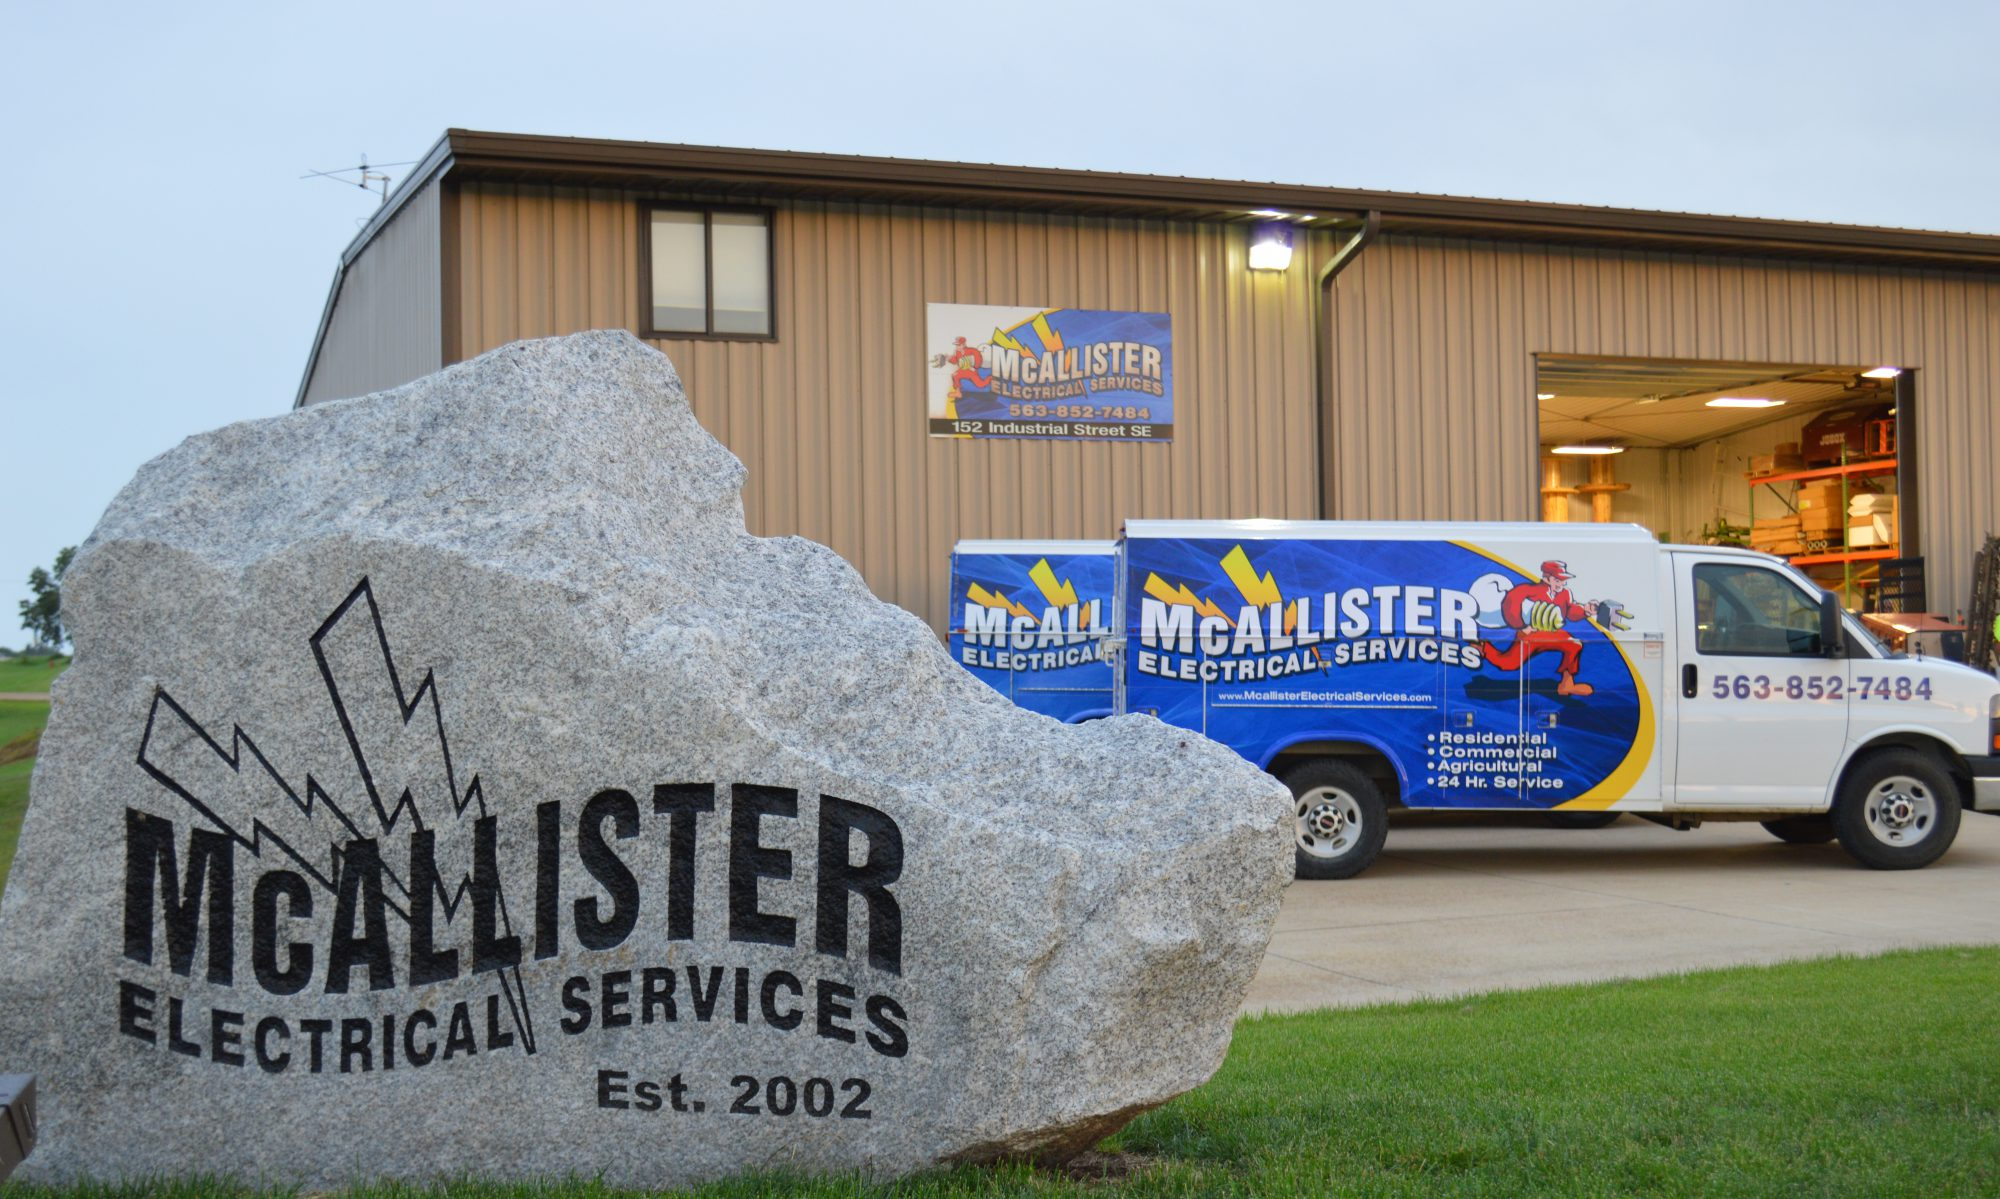 McAllister Electrical Services